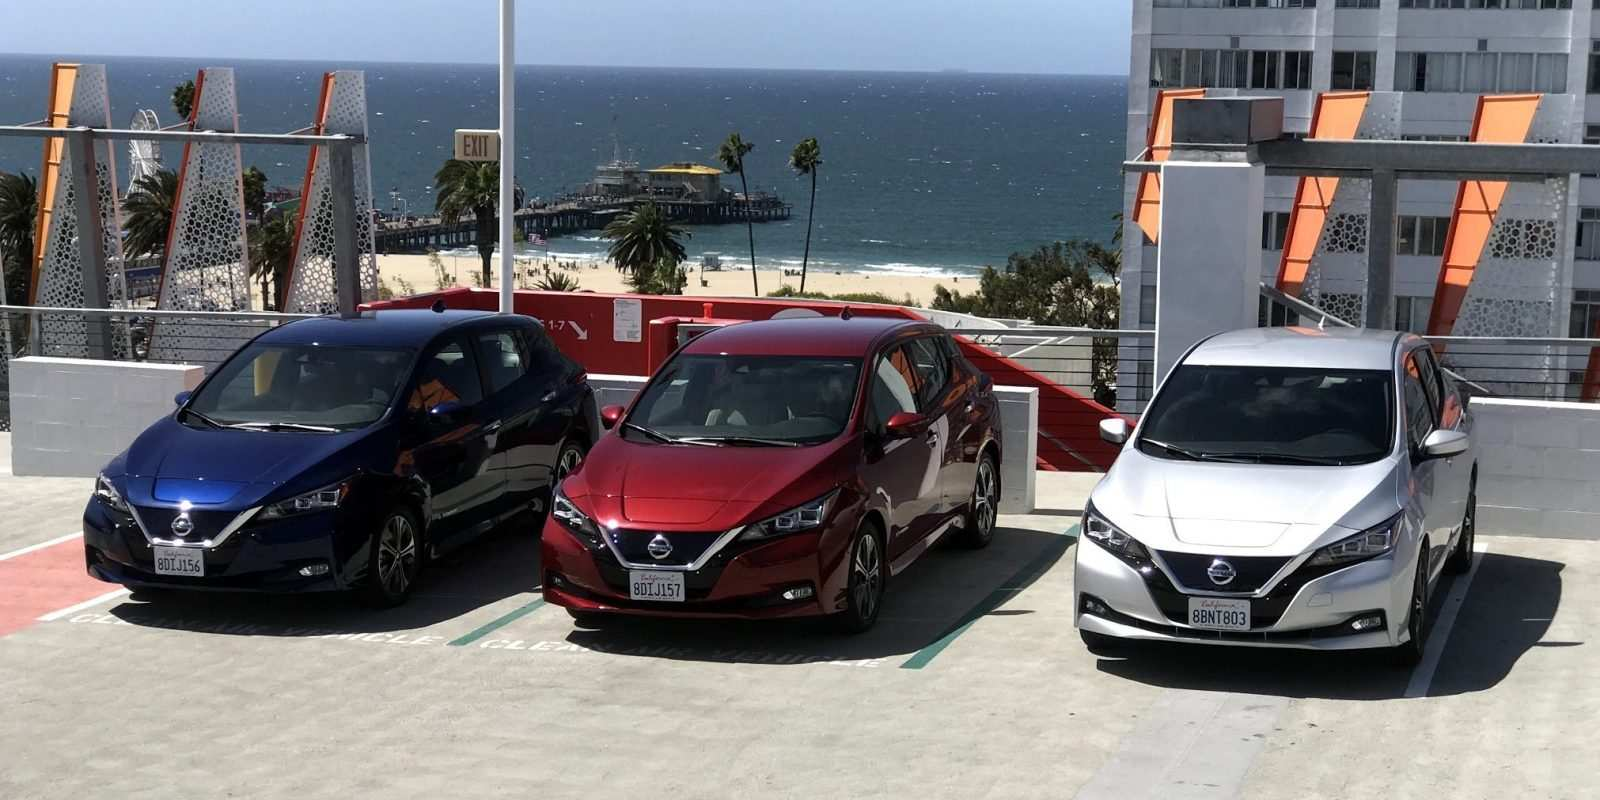 22 New Nissan Leaf 2020 60 Kwh Spy Shoot for Nissan Leaf 2020 60 Kwh